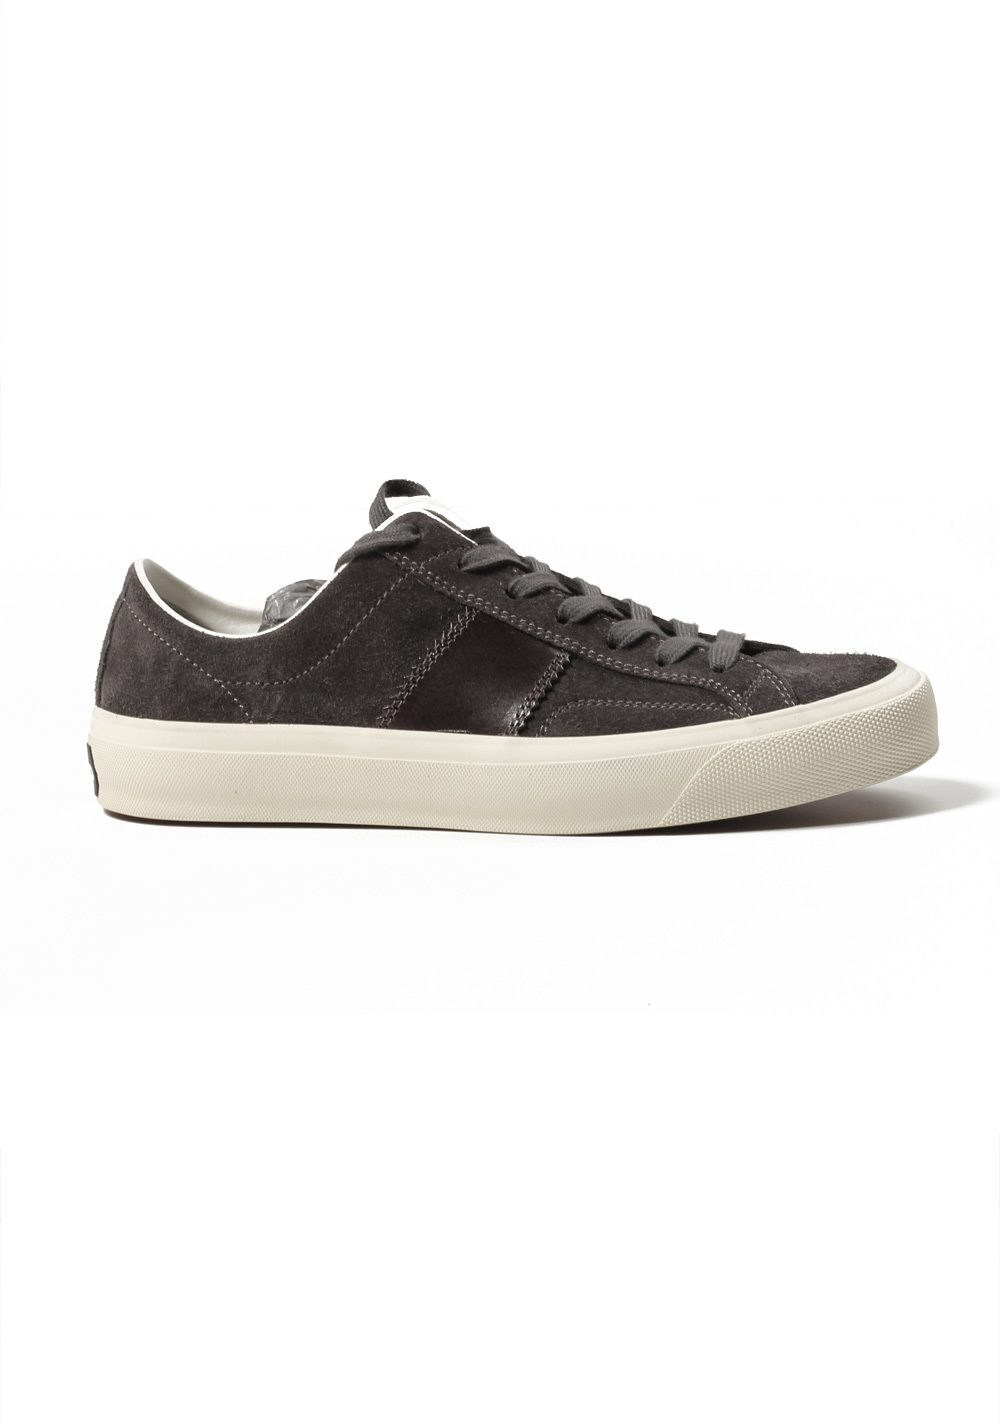 TOM FORD Cambridge Lace Up Dark Gray Suede Sneaker Shoes Size 8 UK / 9 U.S. | Costume Limité